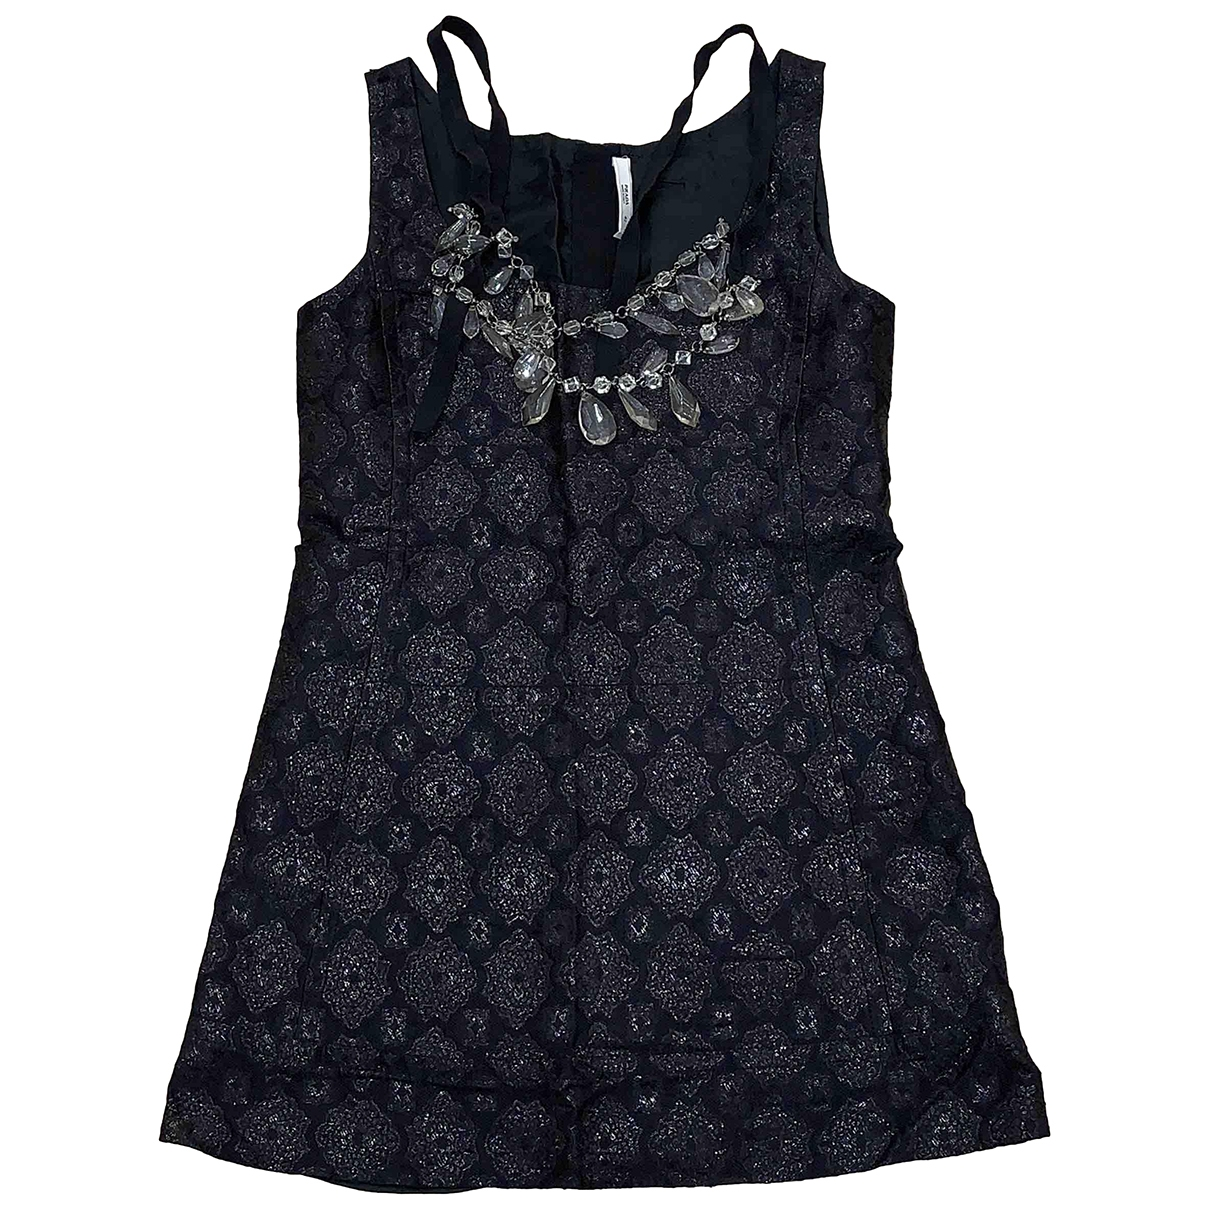 Prada \N Black Silk dress for Women 42 IT